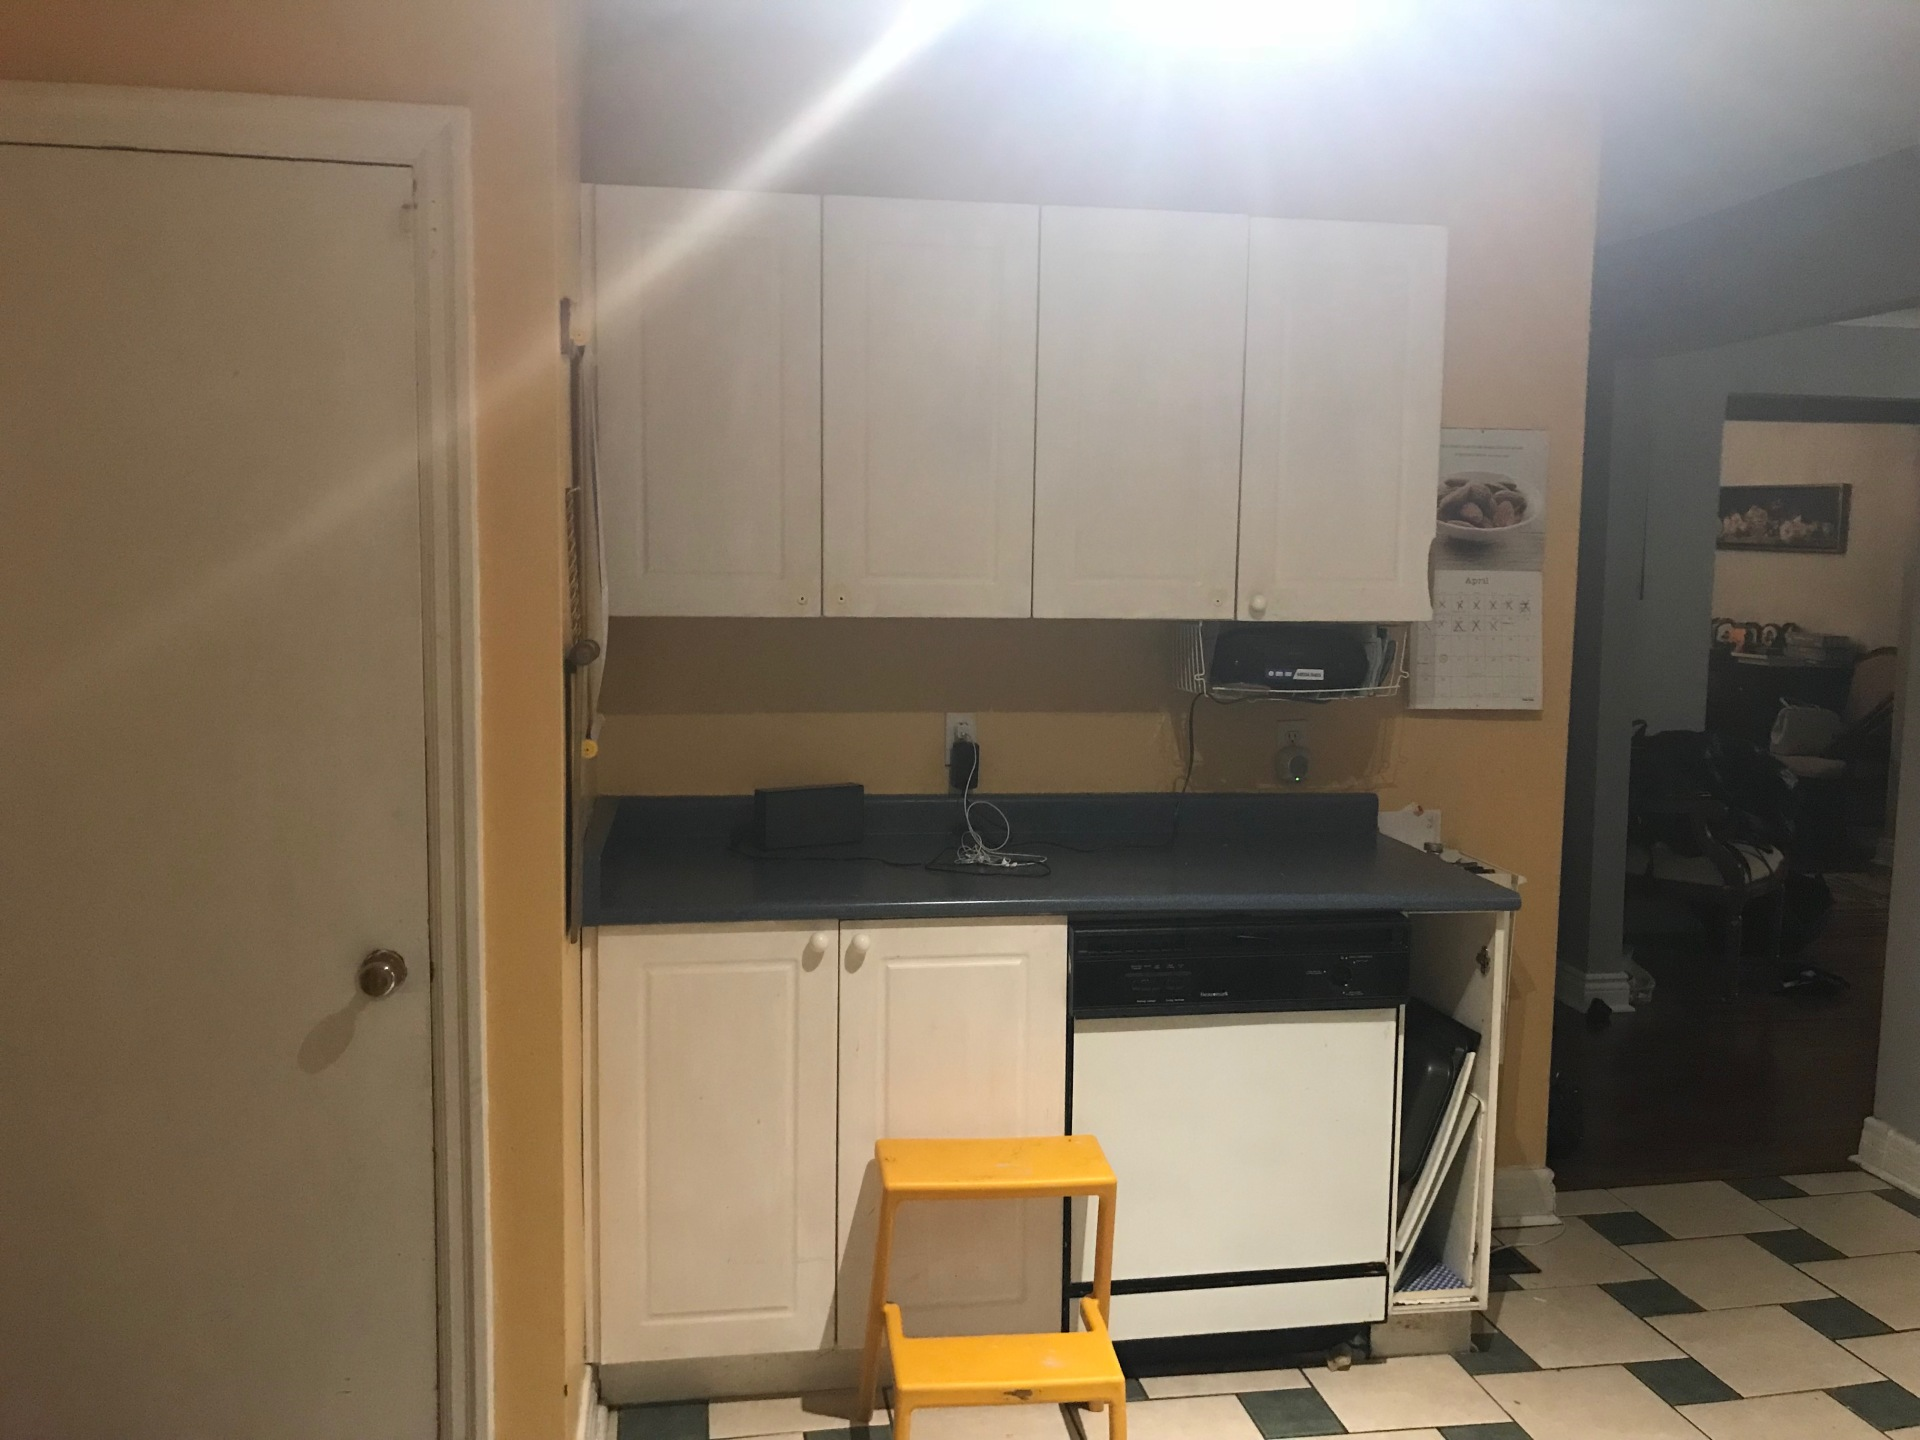 Old Dishwasher / Pantry location